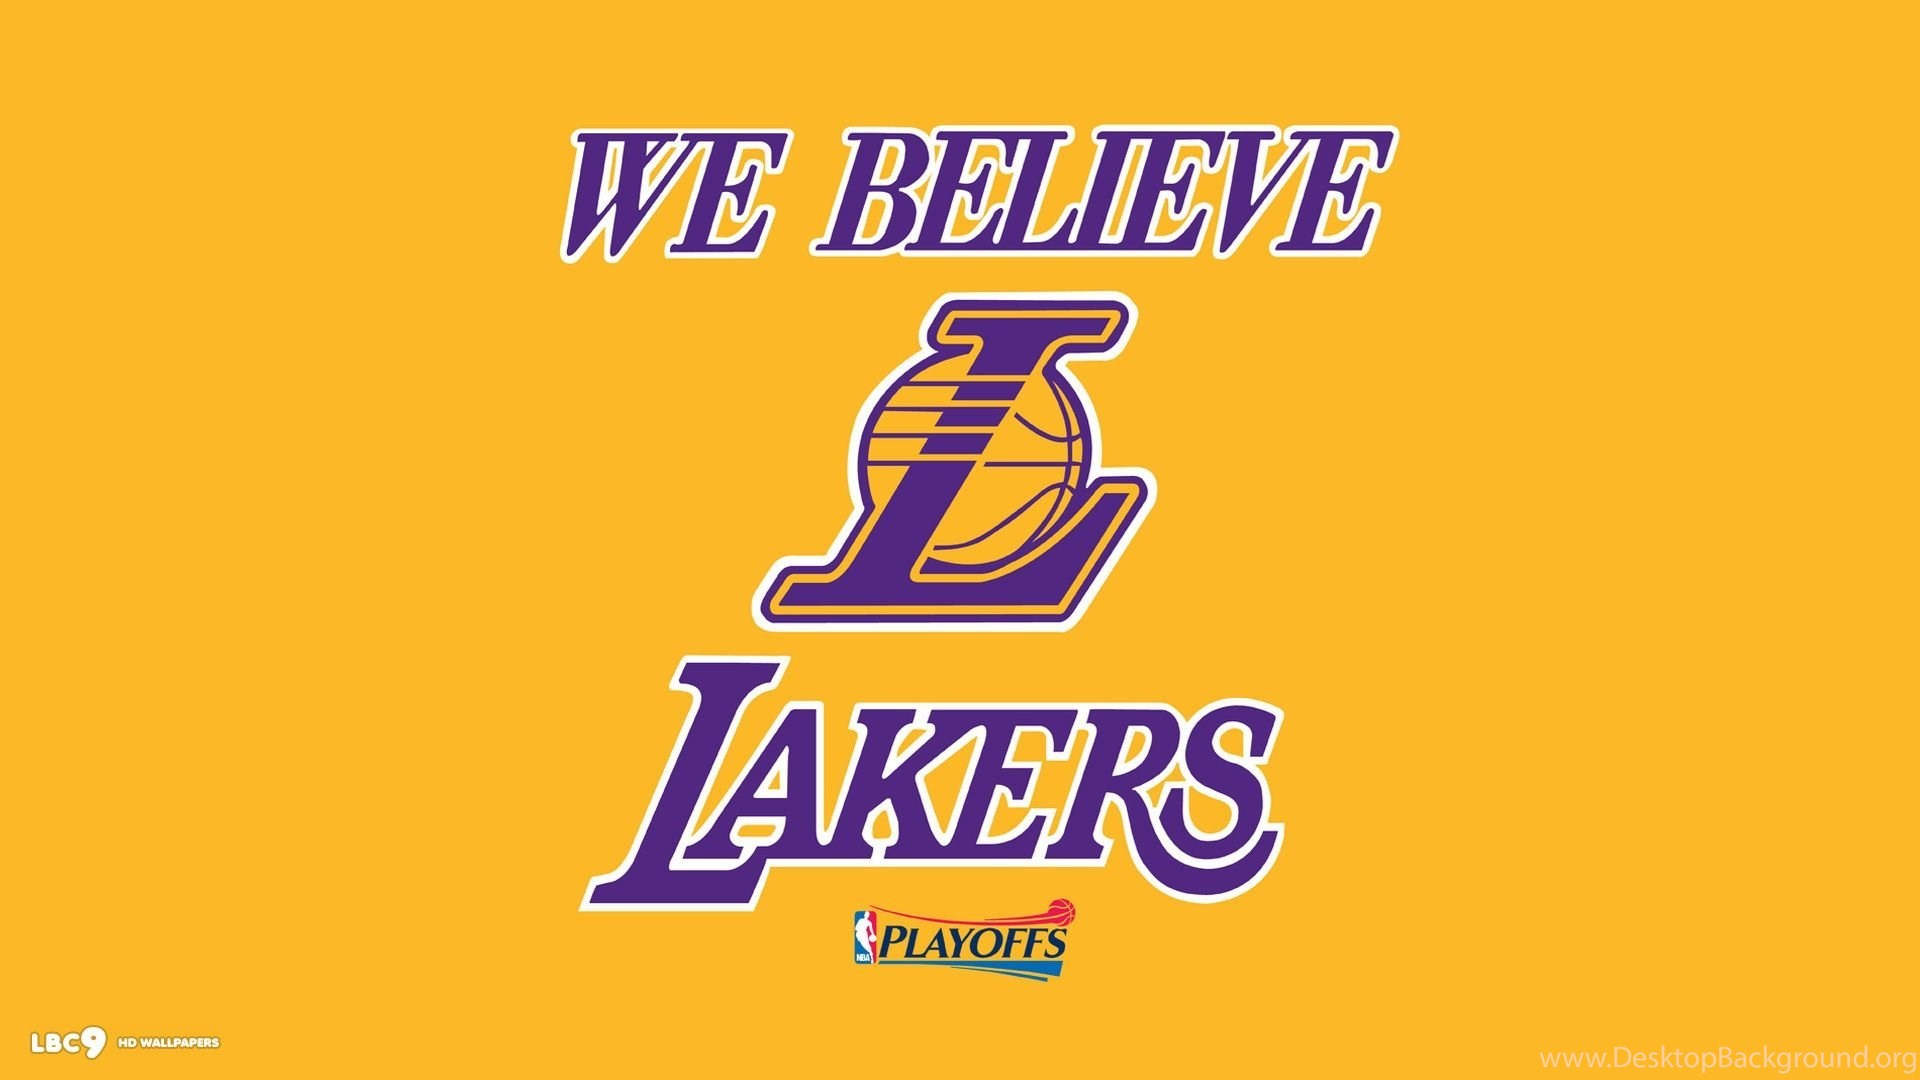 Los angeles lakers nba basketball 35 wallpapers desktop background popular voltagebd Image collections